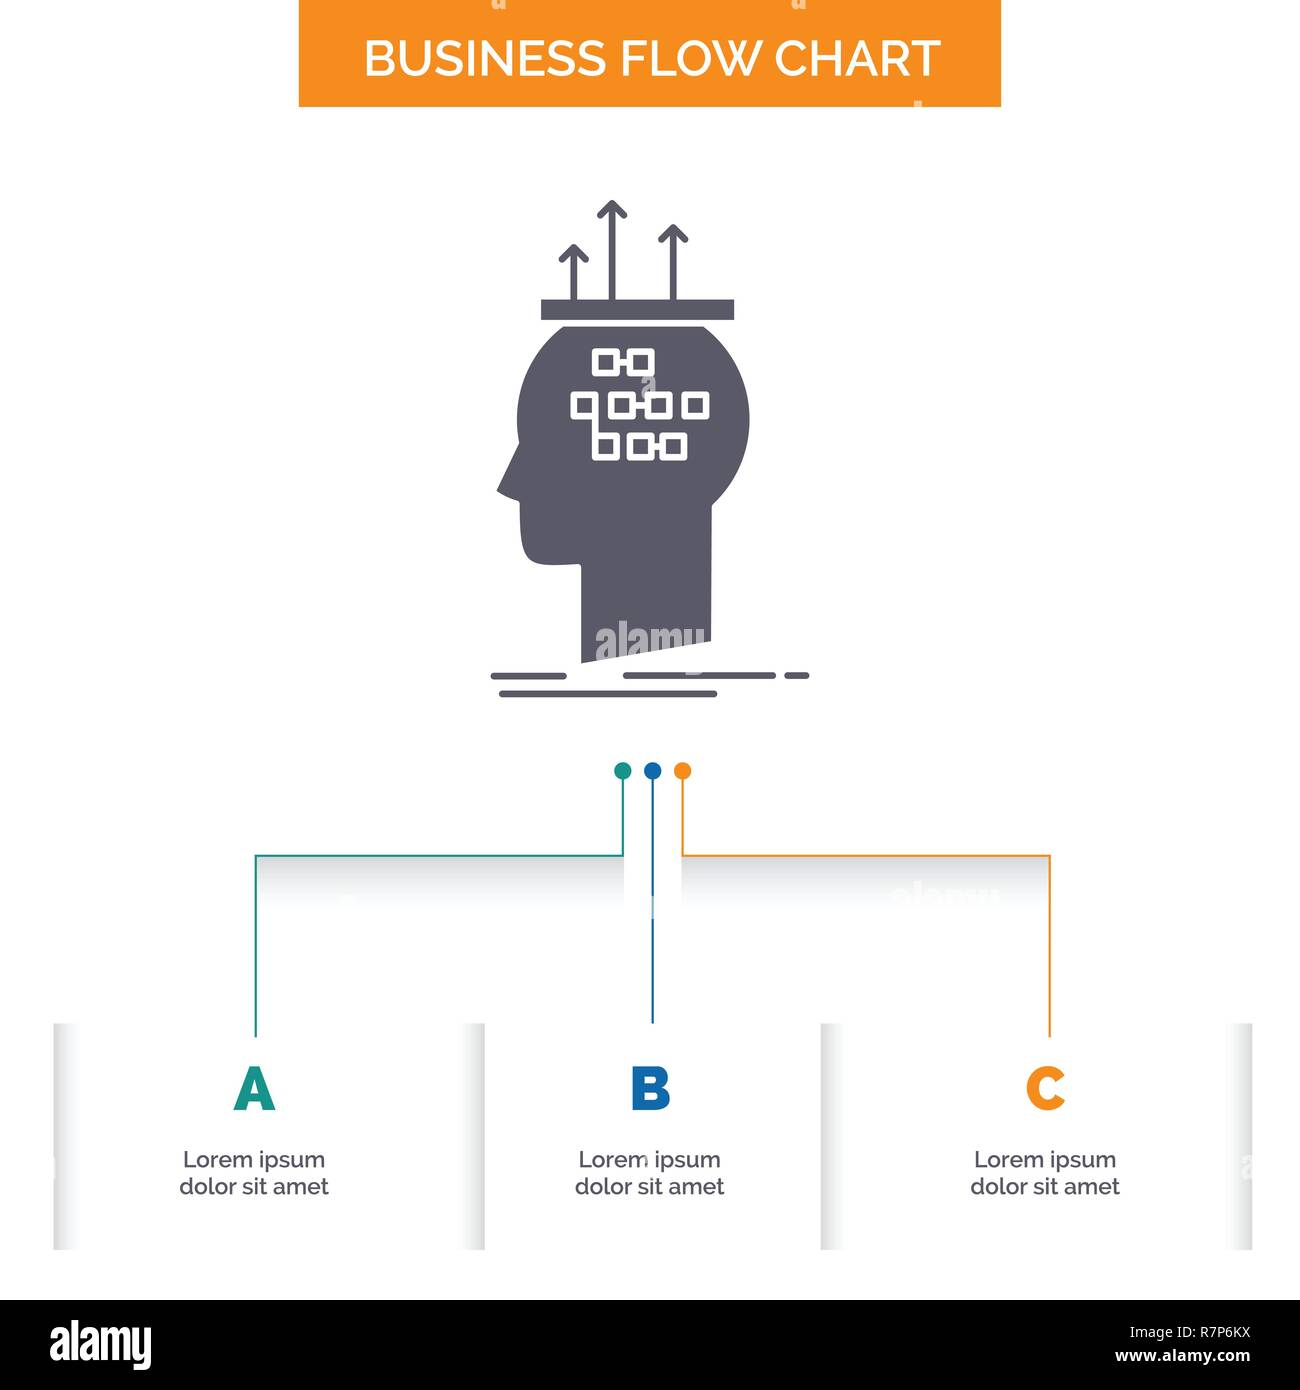 hight resolution of algorithm brain conclusion process thinking business flow chart design with 3 steps glyph icon for presentation background template place for tex